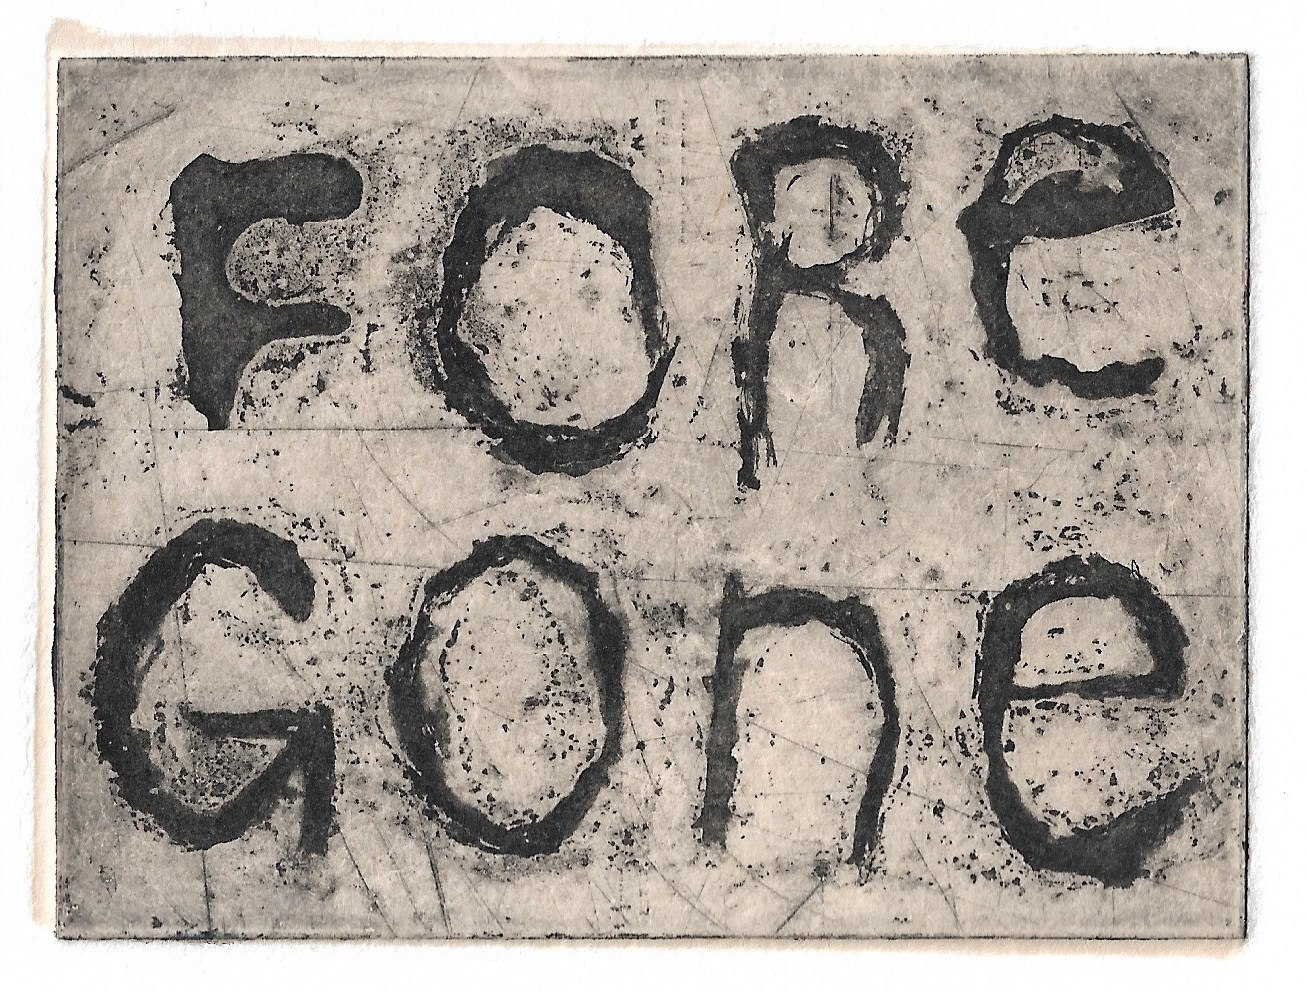 Ben Beres,  Foregone , Sugarlift, aquatint and chine collé, 3 x 4 inches